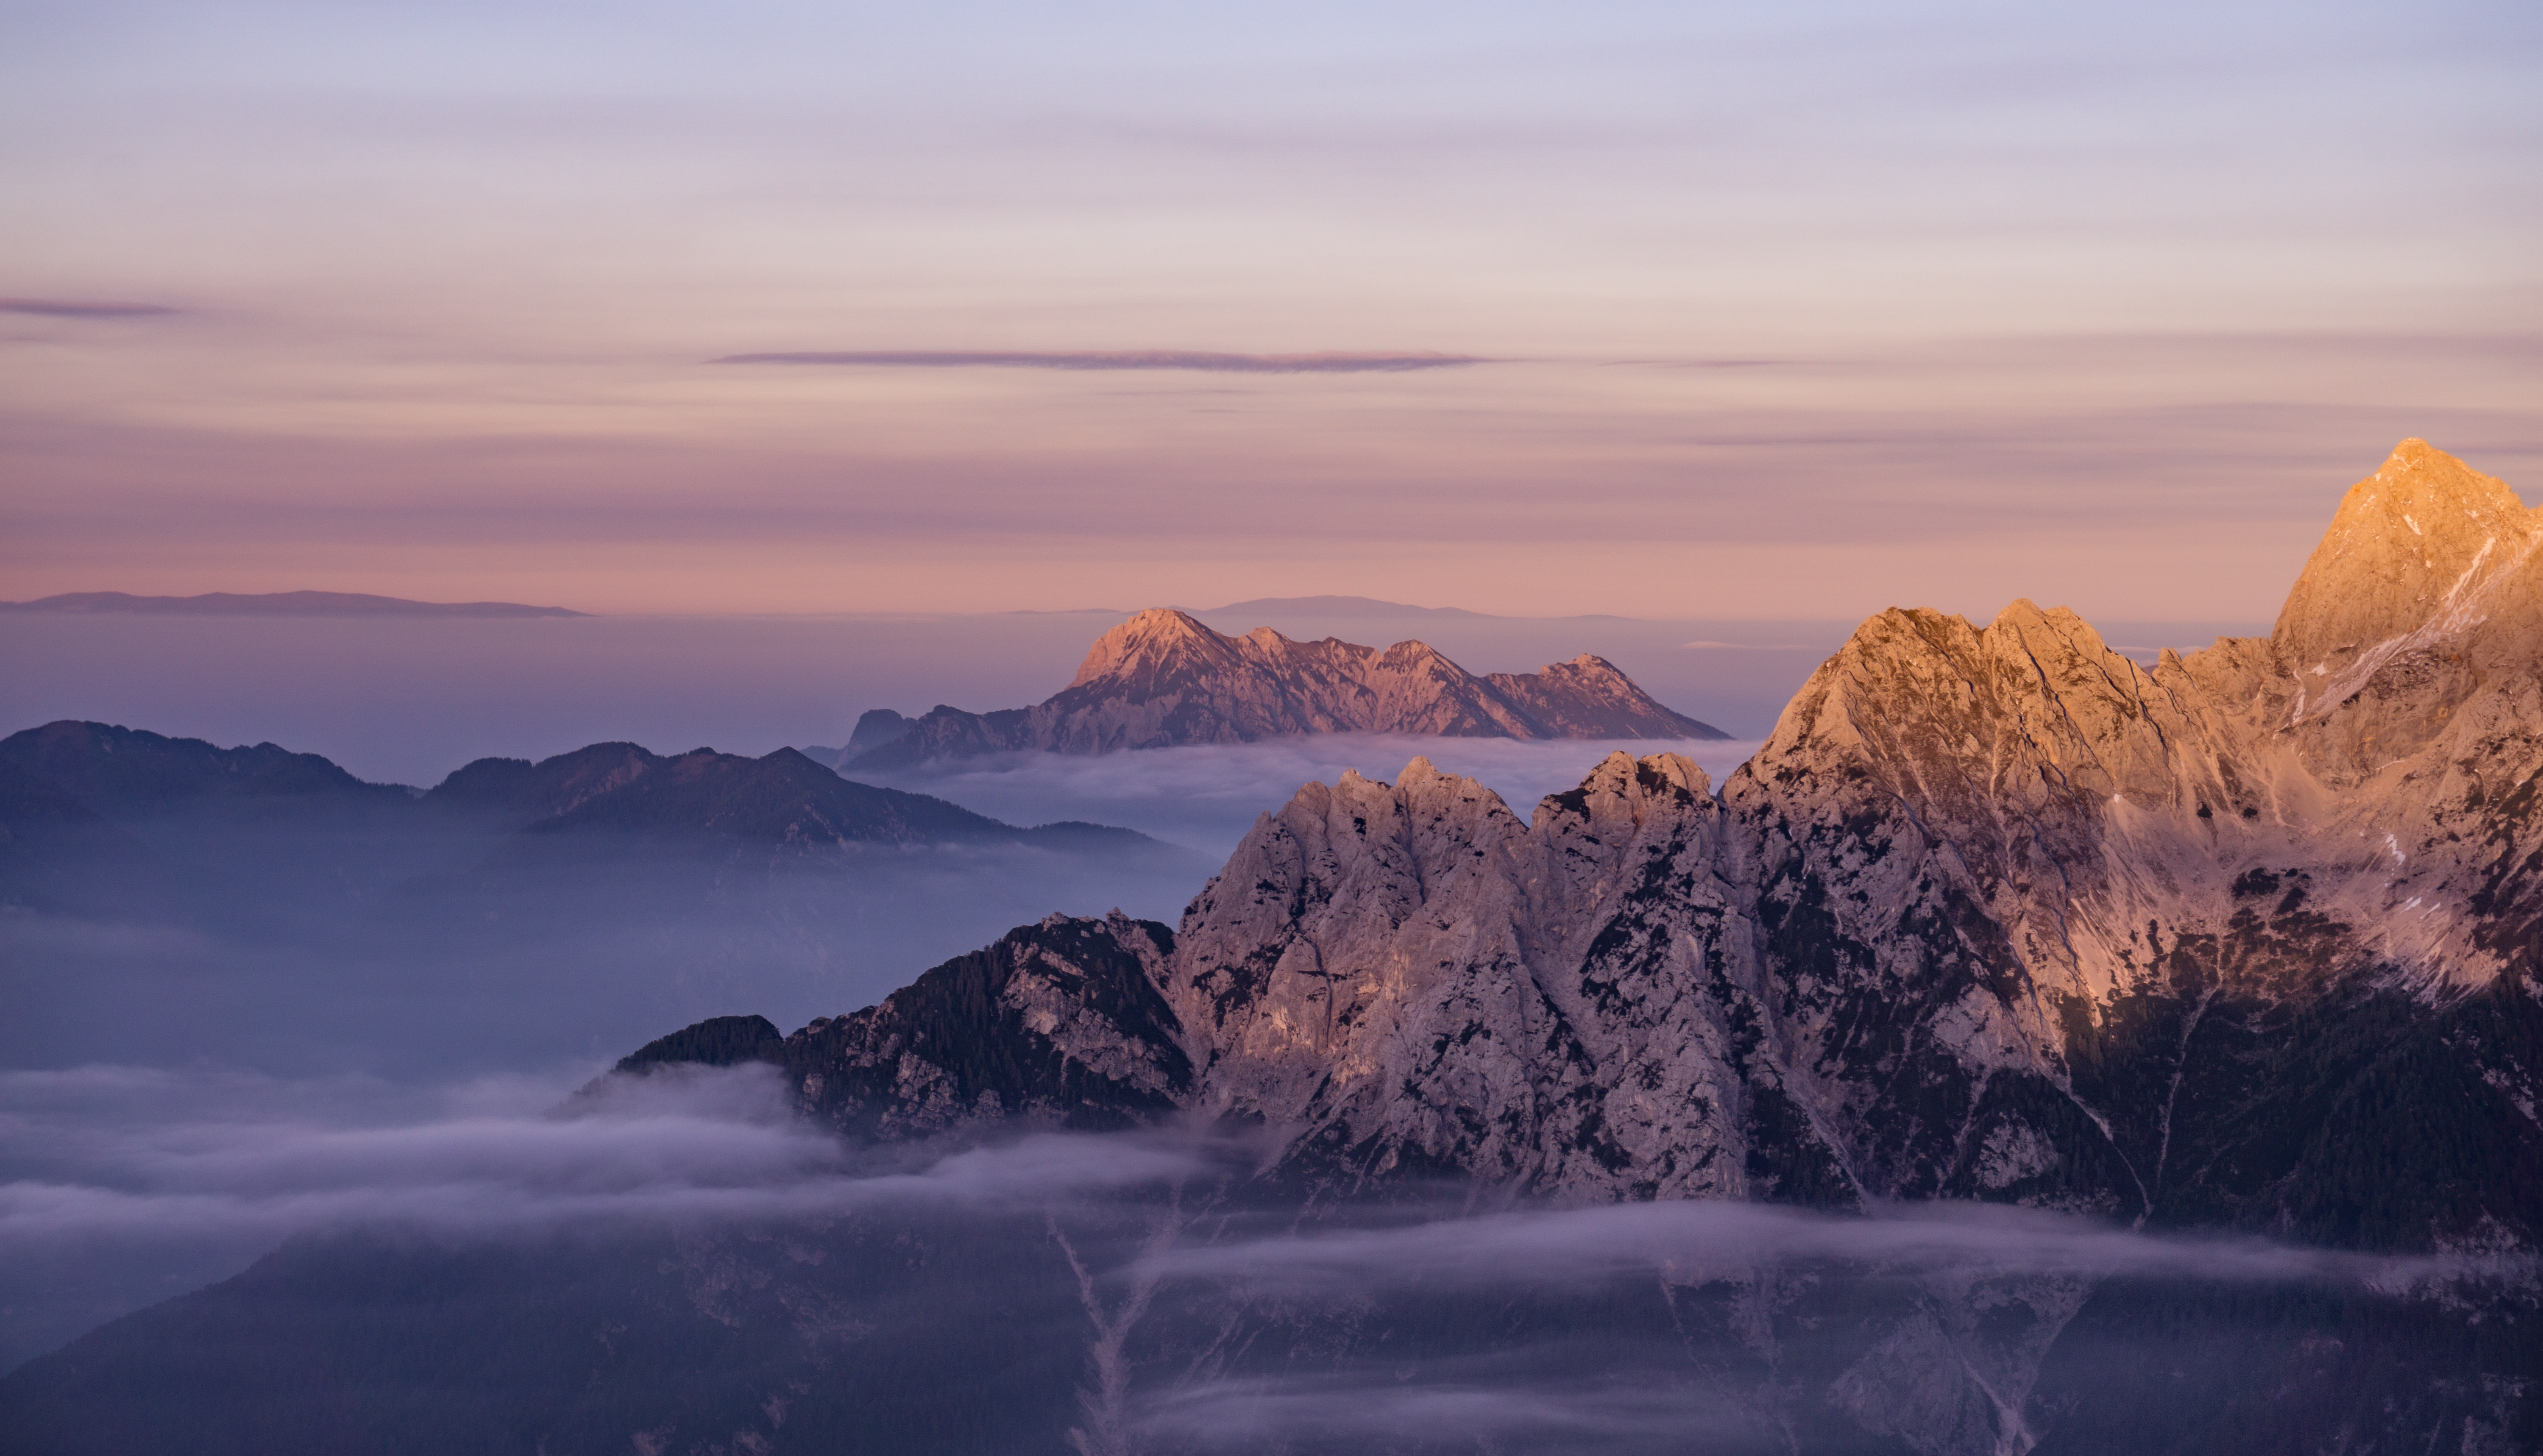 Wisps of fog surround rocky mountain summits